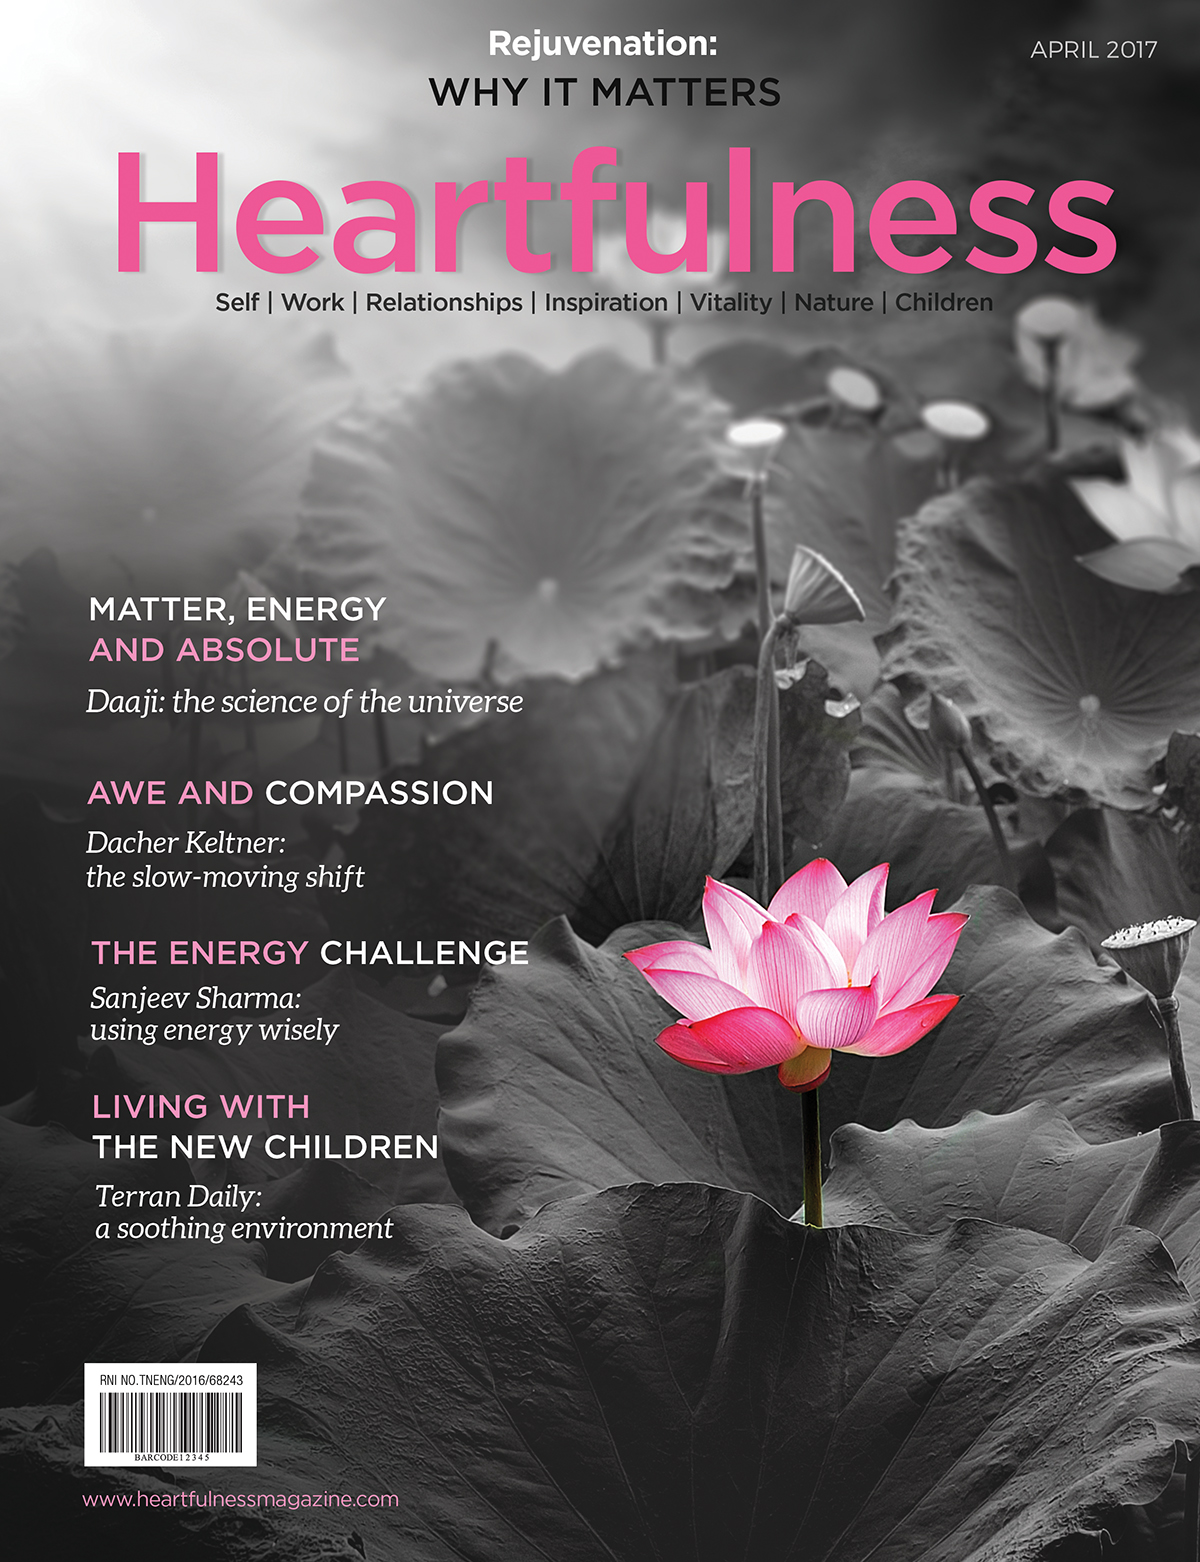 Heartfulness eMagazine - April 2017